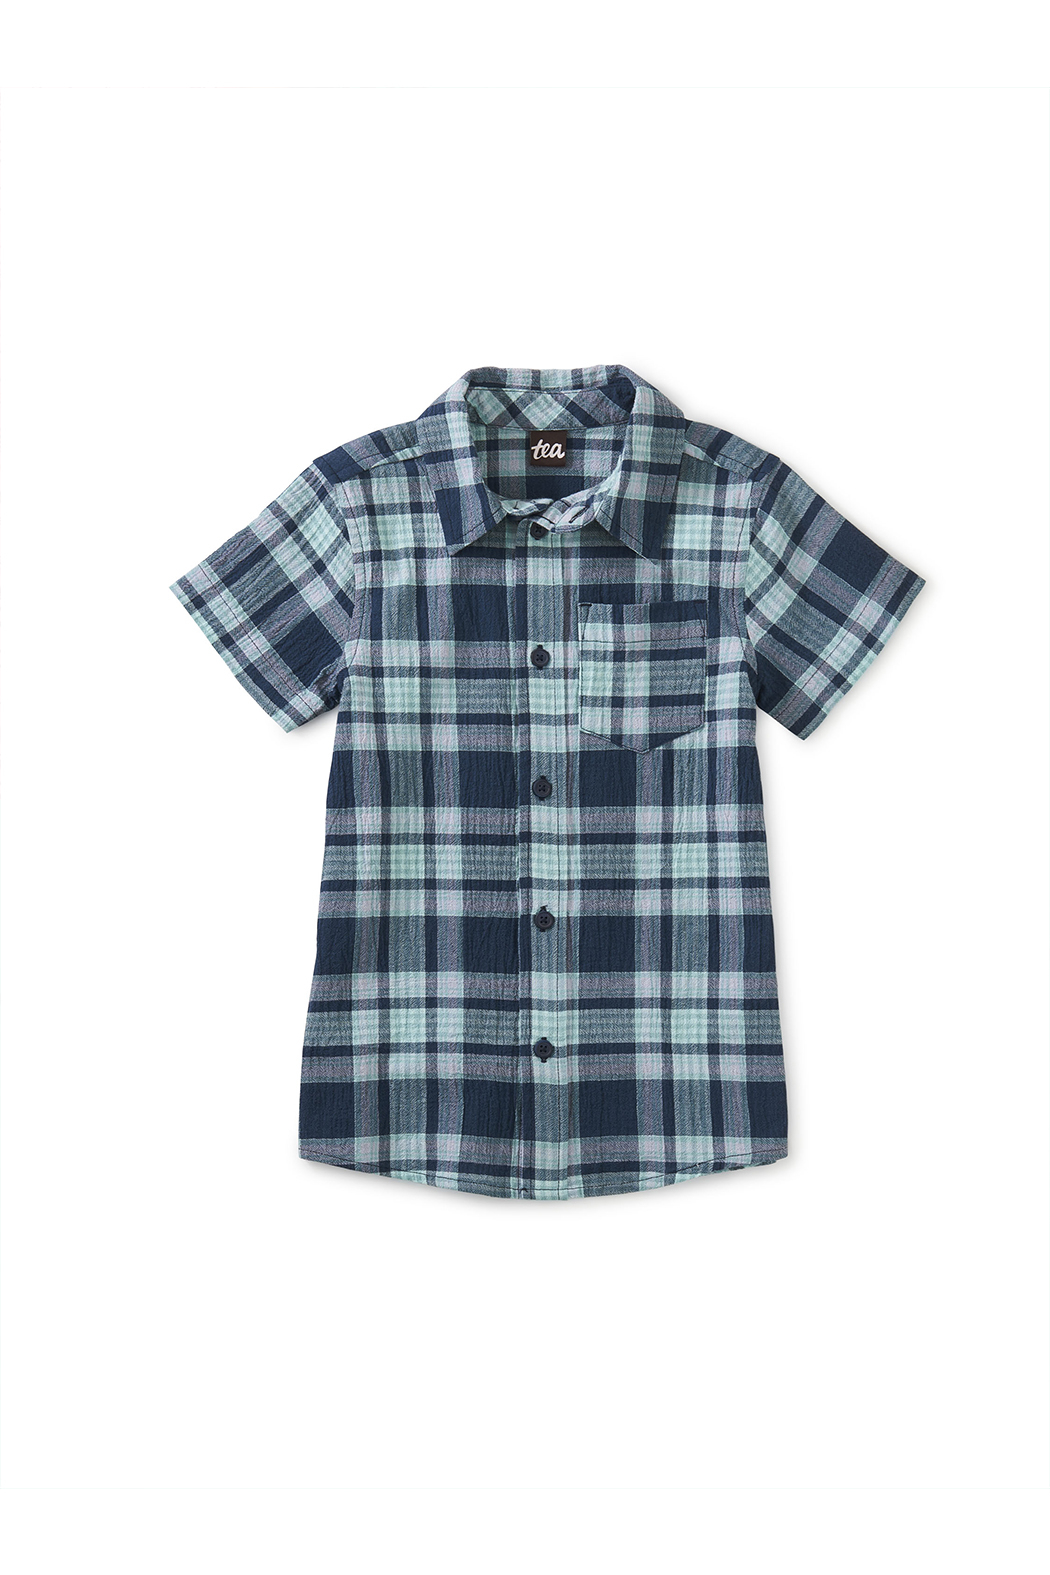 Tea Collection Plaid Button Up Shirt - Sintra Plaid In Whale Blue - Main Image